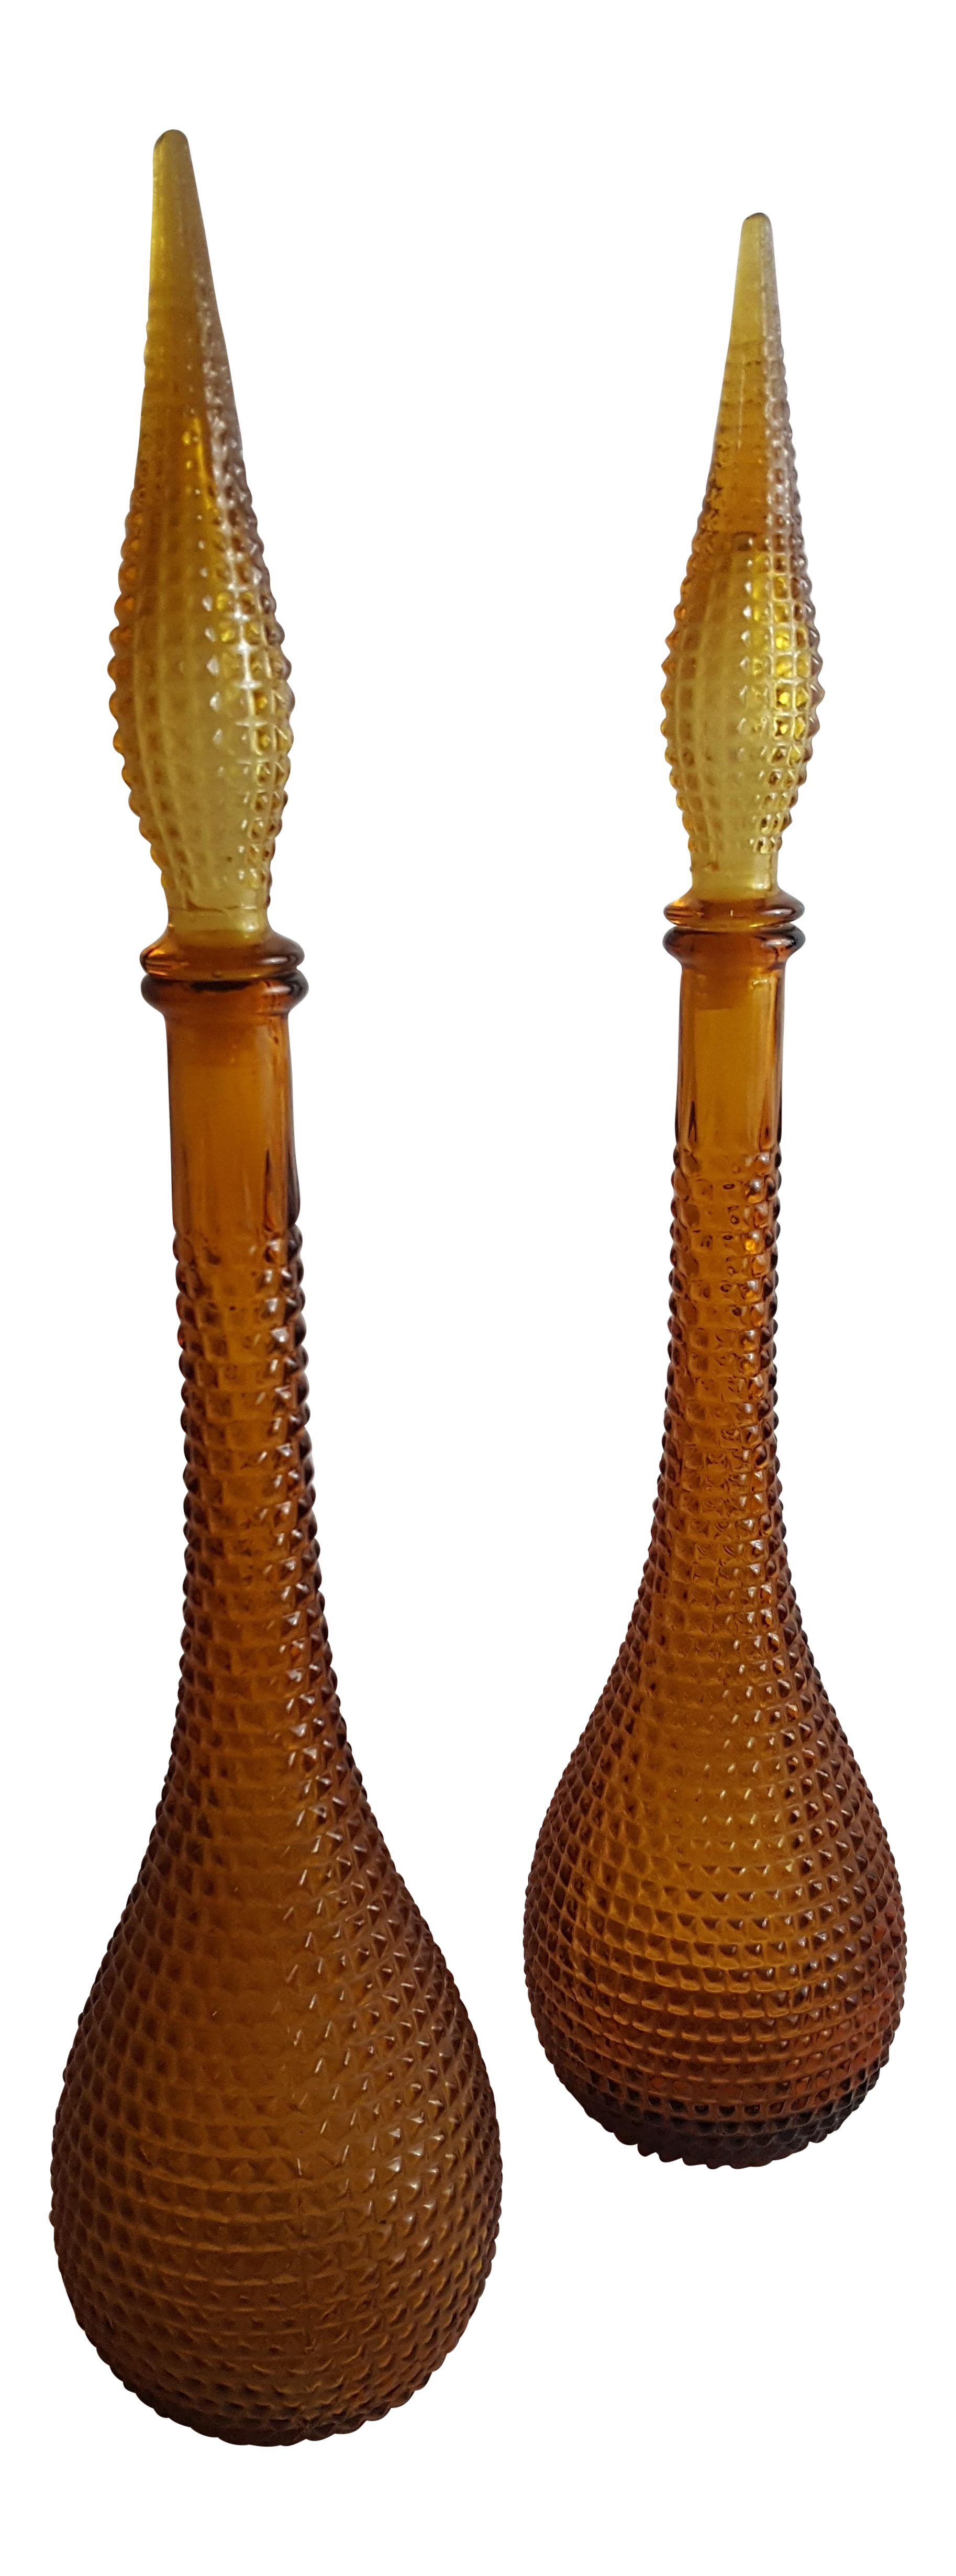 Gold handblown murano glass genie bottle decantors a pair for Kitchen cabinet trends 2018 combined with hand blown glass wall art